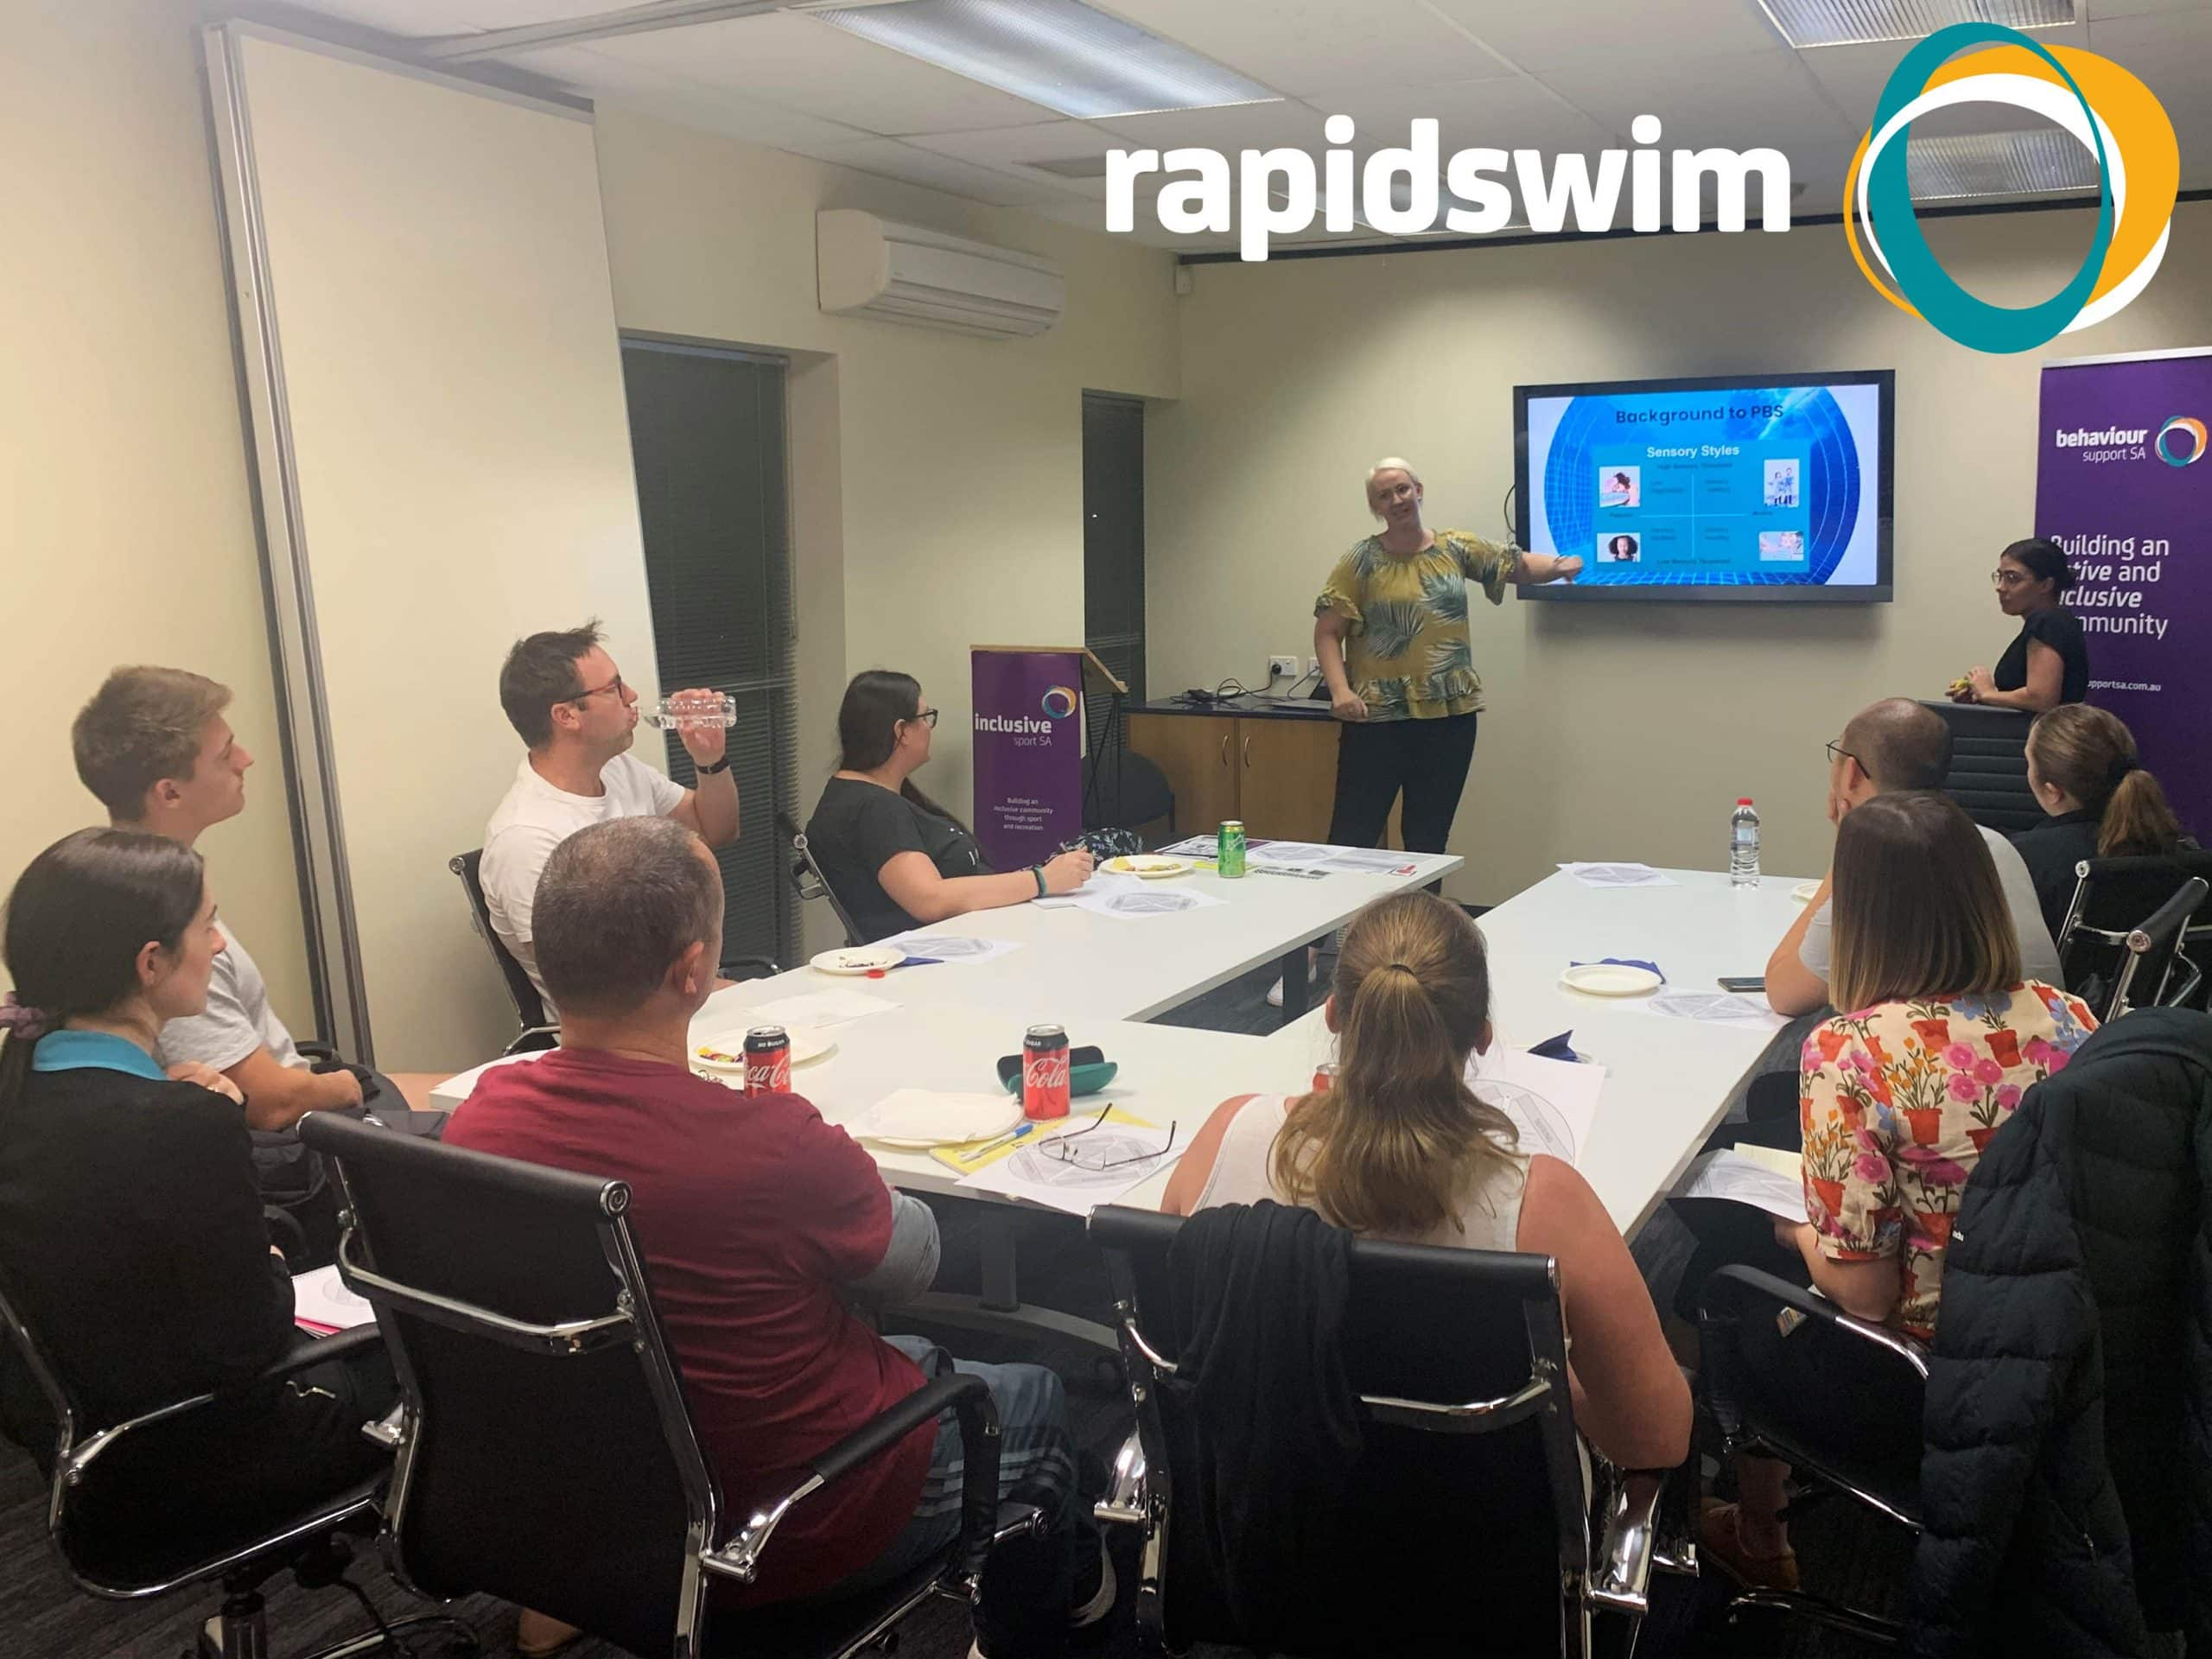 BSSA Practitioner Tamsin Petzer and Clinical Lead Bianca Dubois are giving a presentation a room of Rapidswim staff sit at a board room table listening. The Rapidswim logo appears in the top right hand corner.